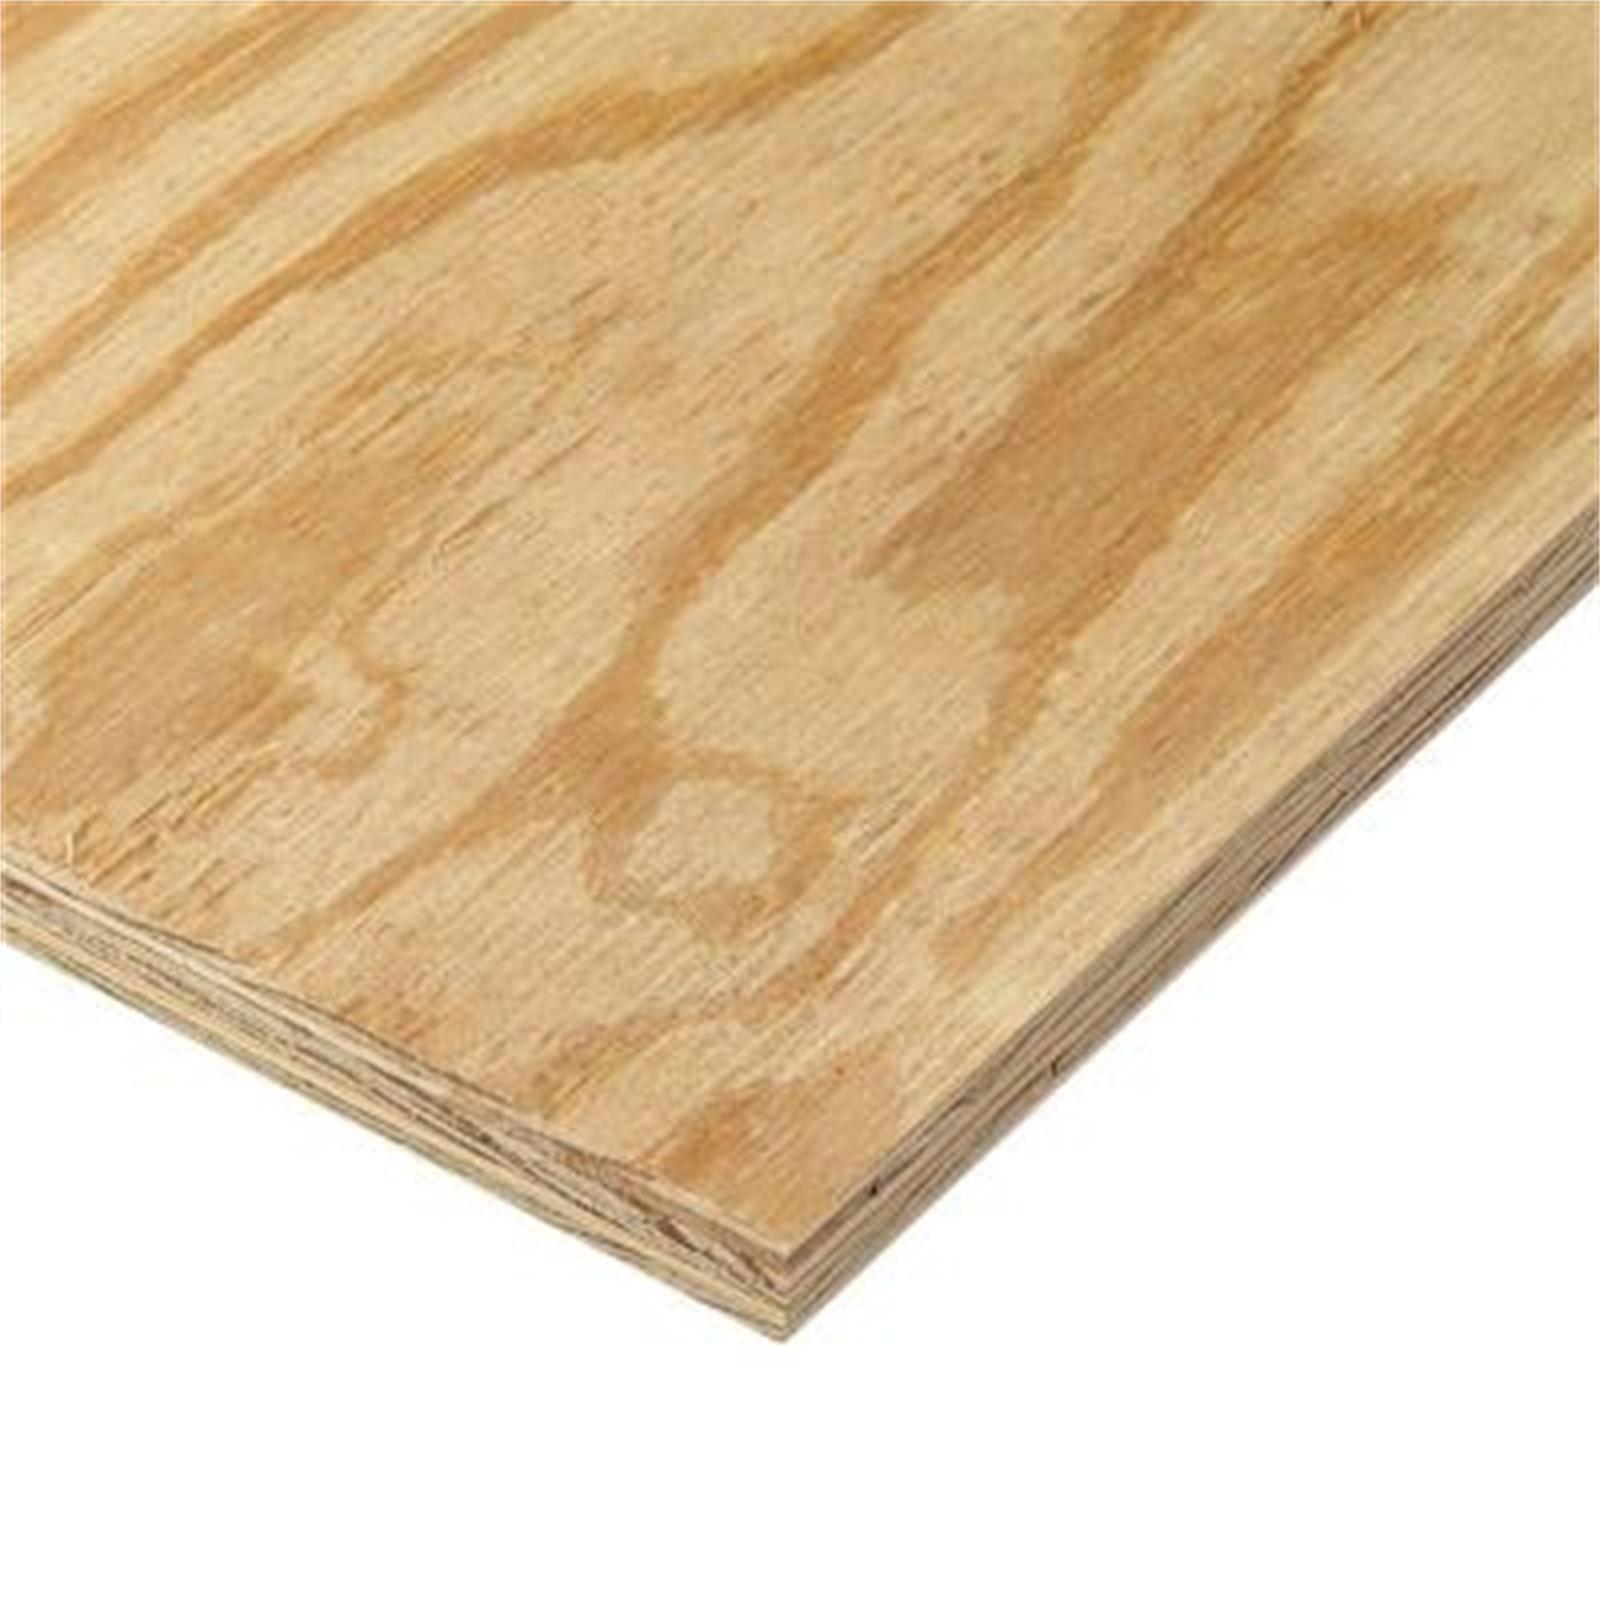 Single Bed Pine Wood Plywood Board 12 mm thickness.Free delivery